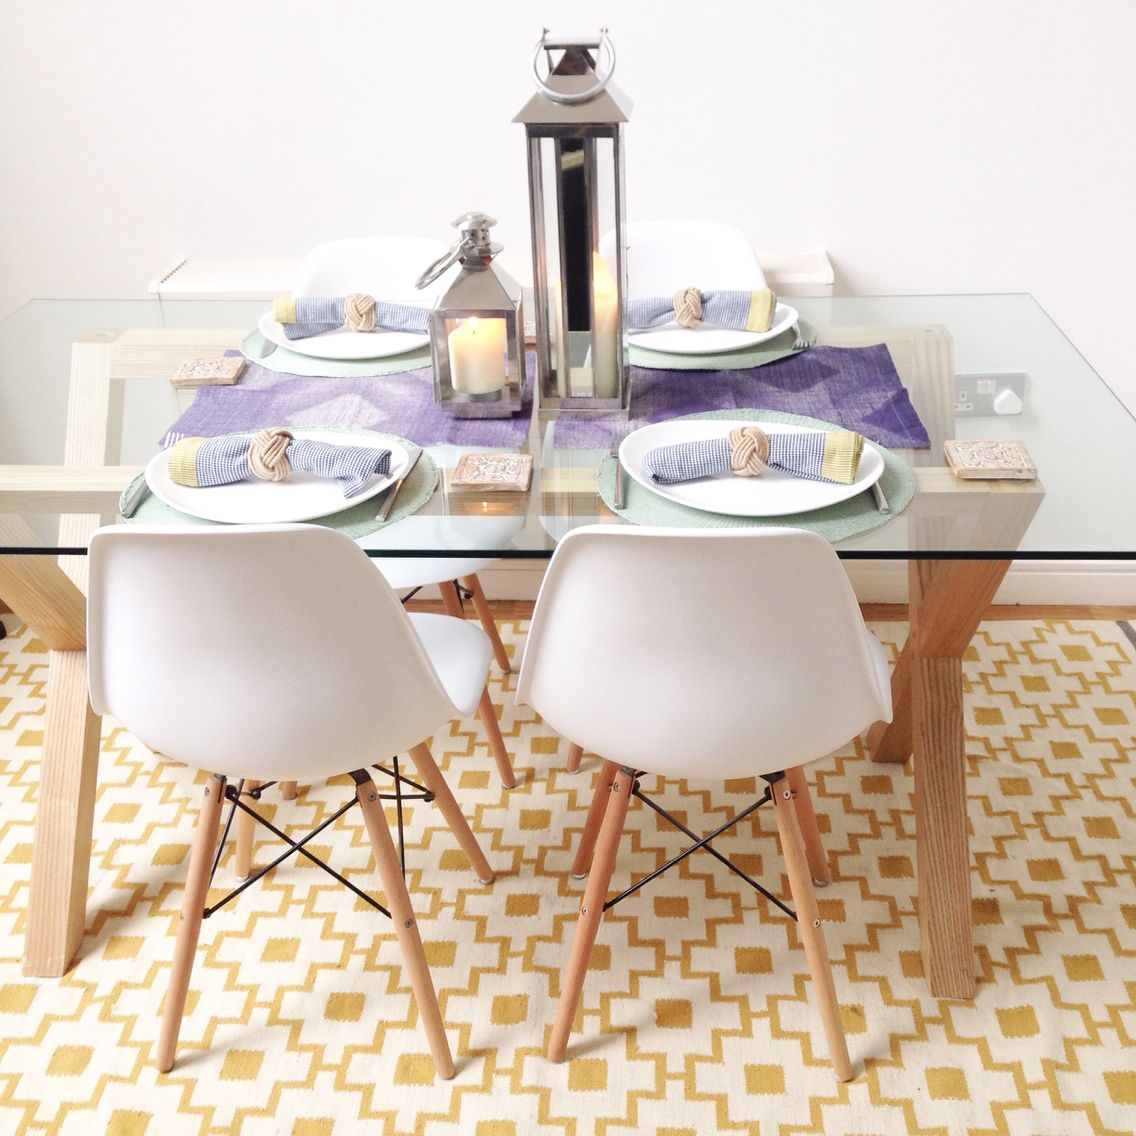 Eames Style Dining Table And Chairs Scandinavian Style Dining Area John Lewis Oak And Glass